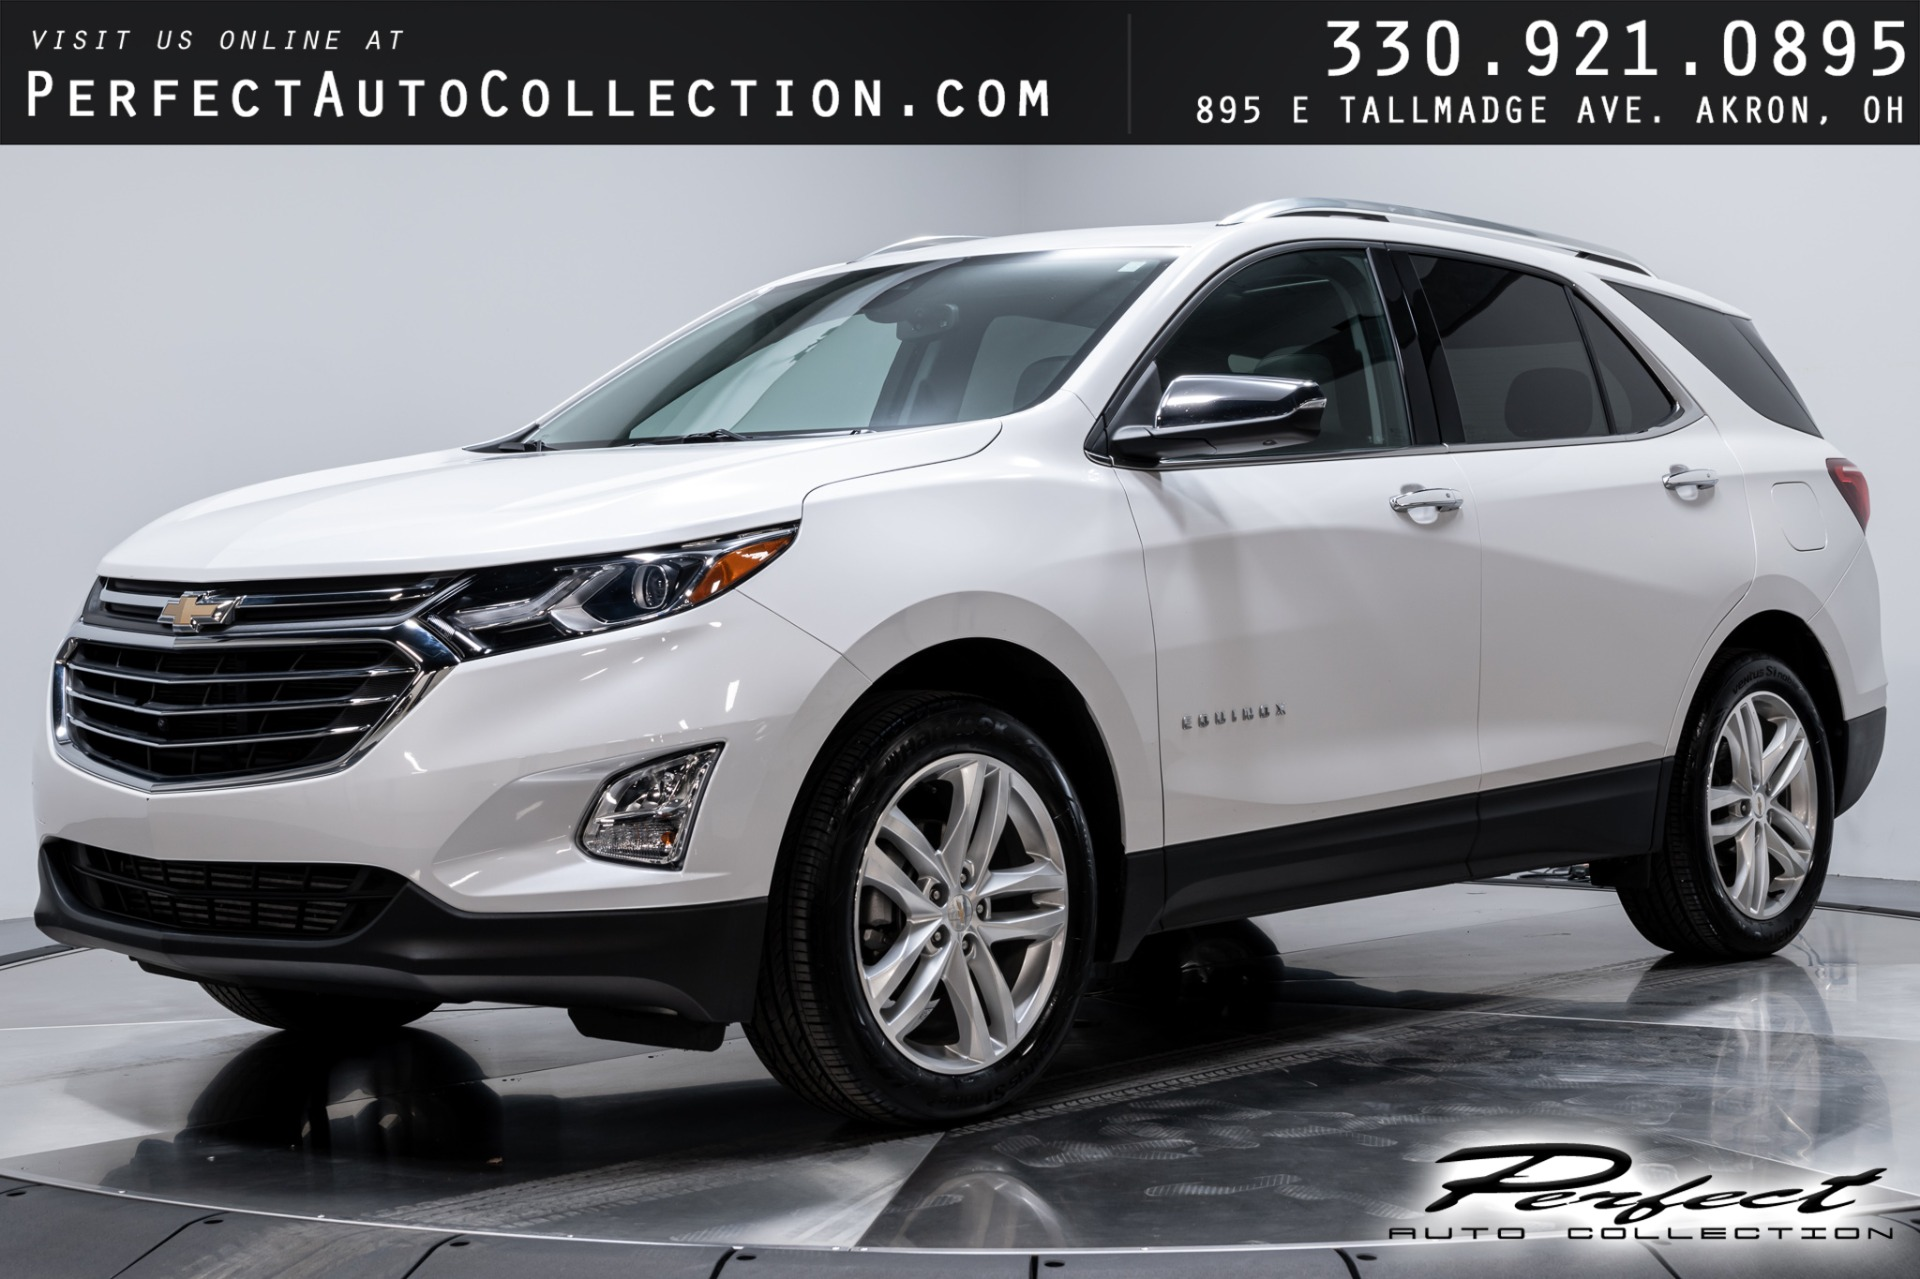 Used 2018 Chevrolet Equinox Premier for sale Sold at Perfect Auto Collection in Akron OH 44310 1